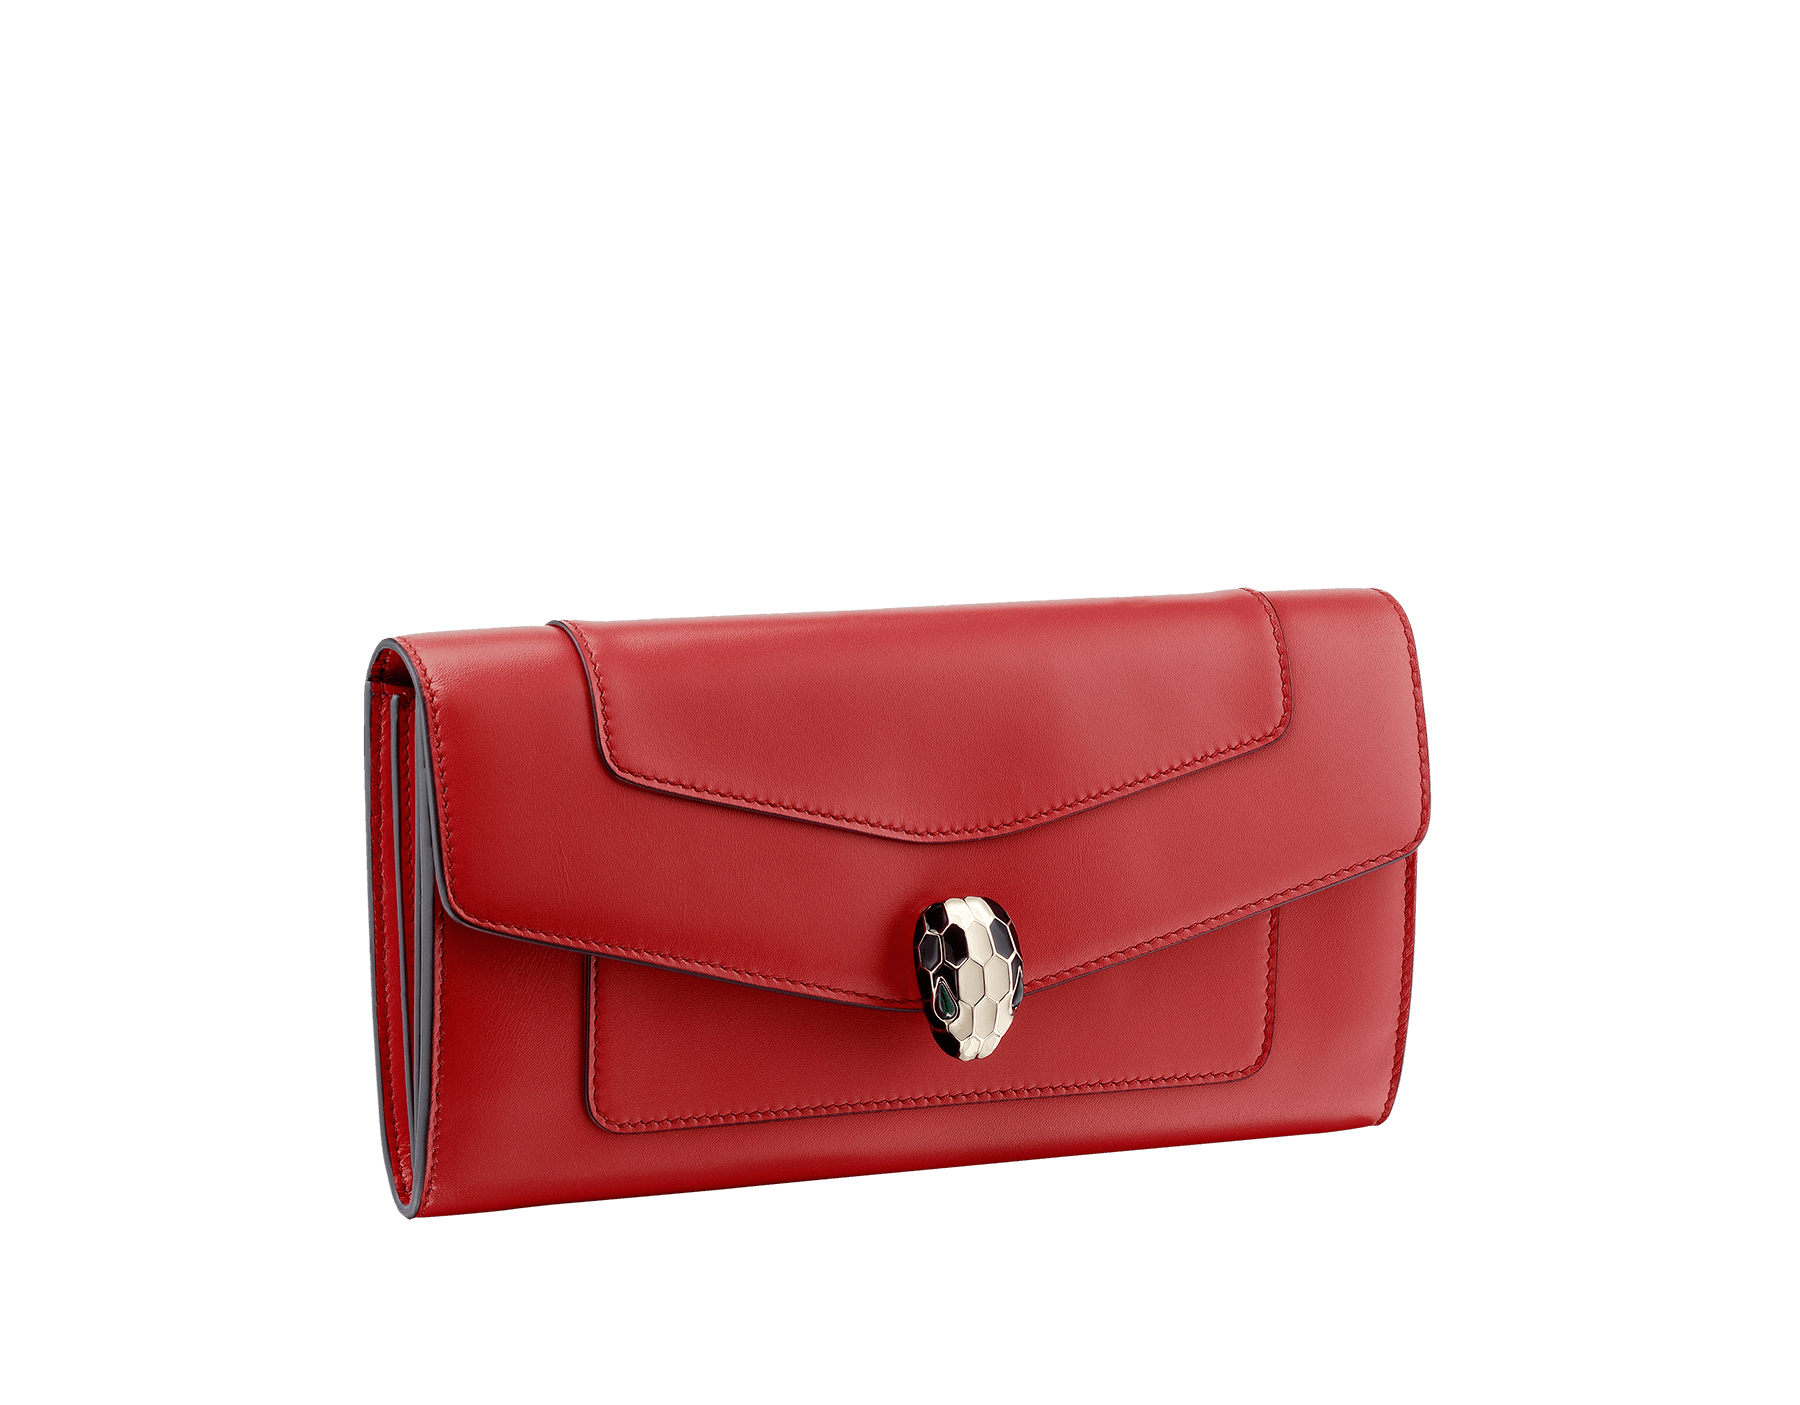 Wallet pochette in emerald green and violet amethyst calf leather with brass light gold plated hardware.Serpenti head stud closure in black and white enamel with eyes in green malachite. SEA-WLT-POCHE-16CC-CL image 1